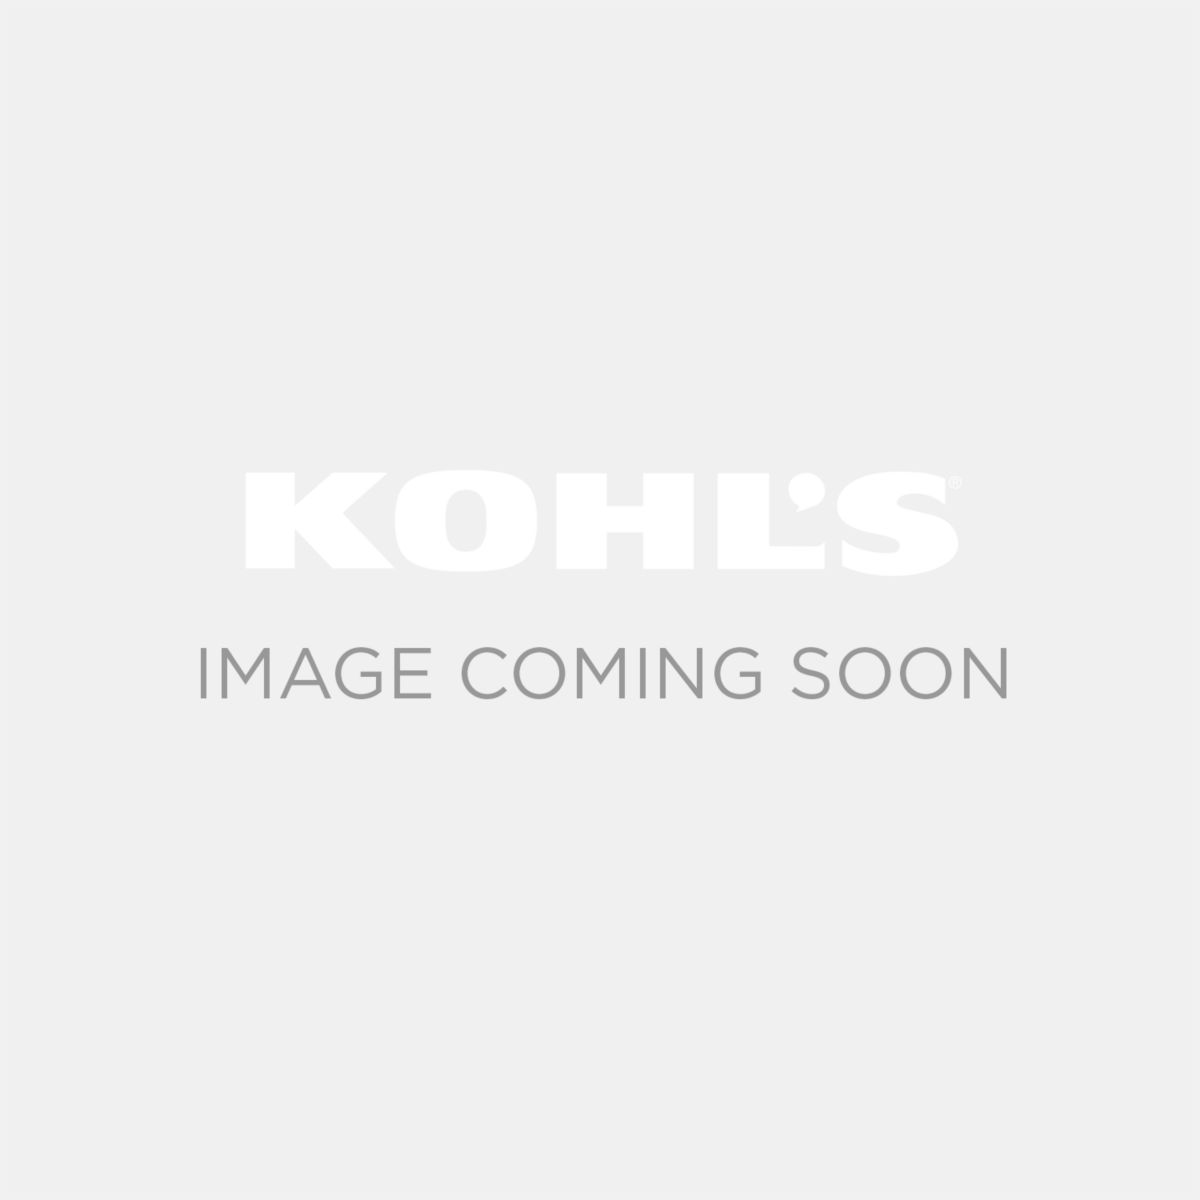 adidas Hoops 2.0 Women's Sneakers White oboZD